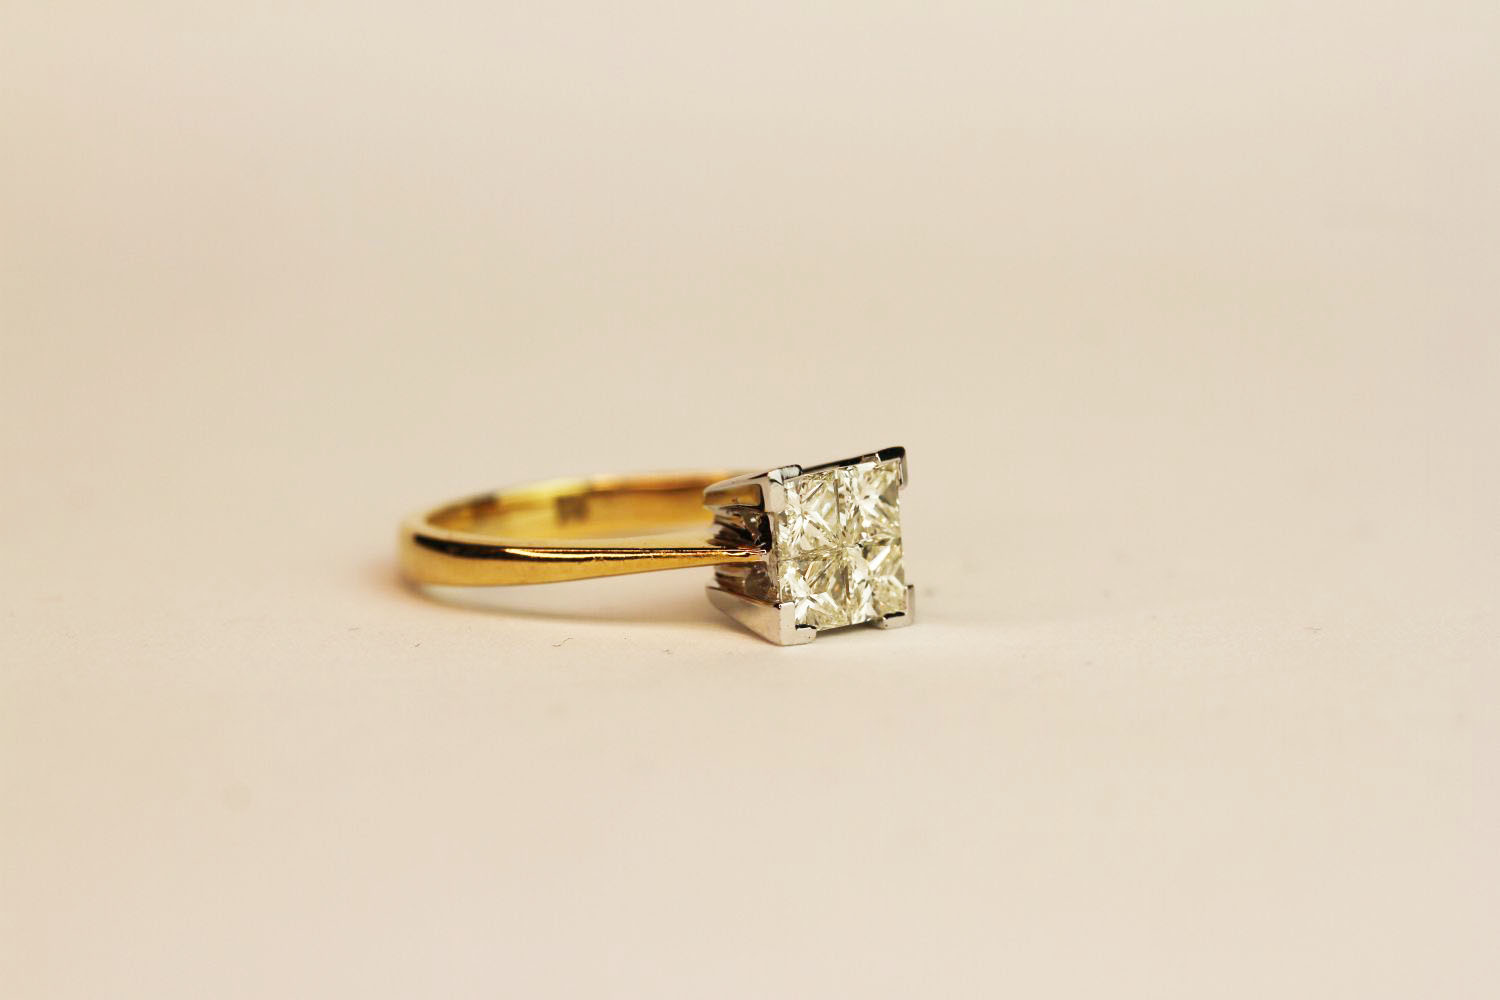 18ct yellow and white gold four invisible set diamond ring. Diamonds 0.75ct, ring size N. - Image 2 of 3